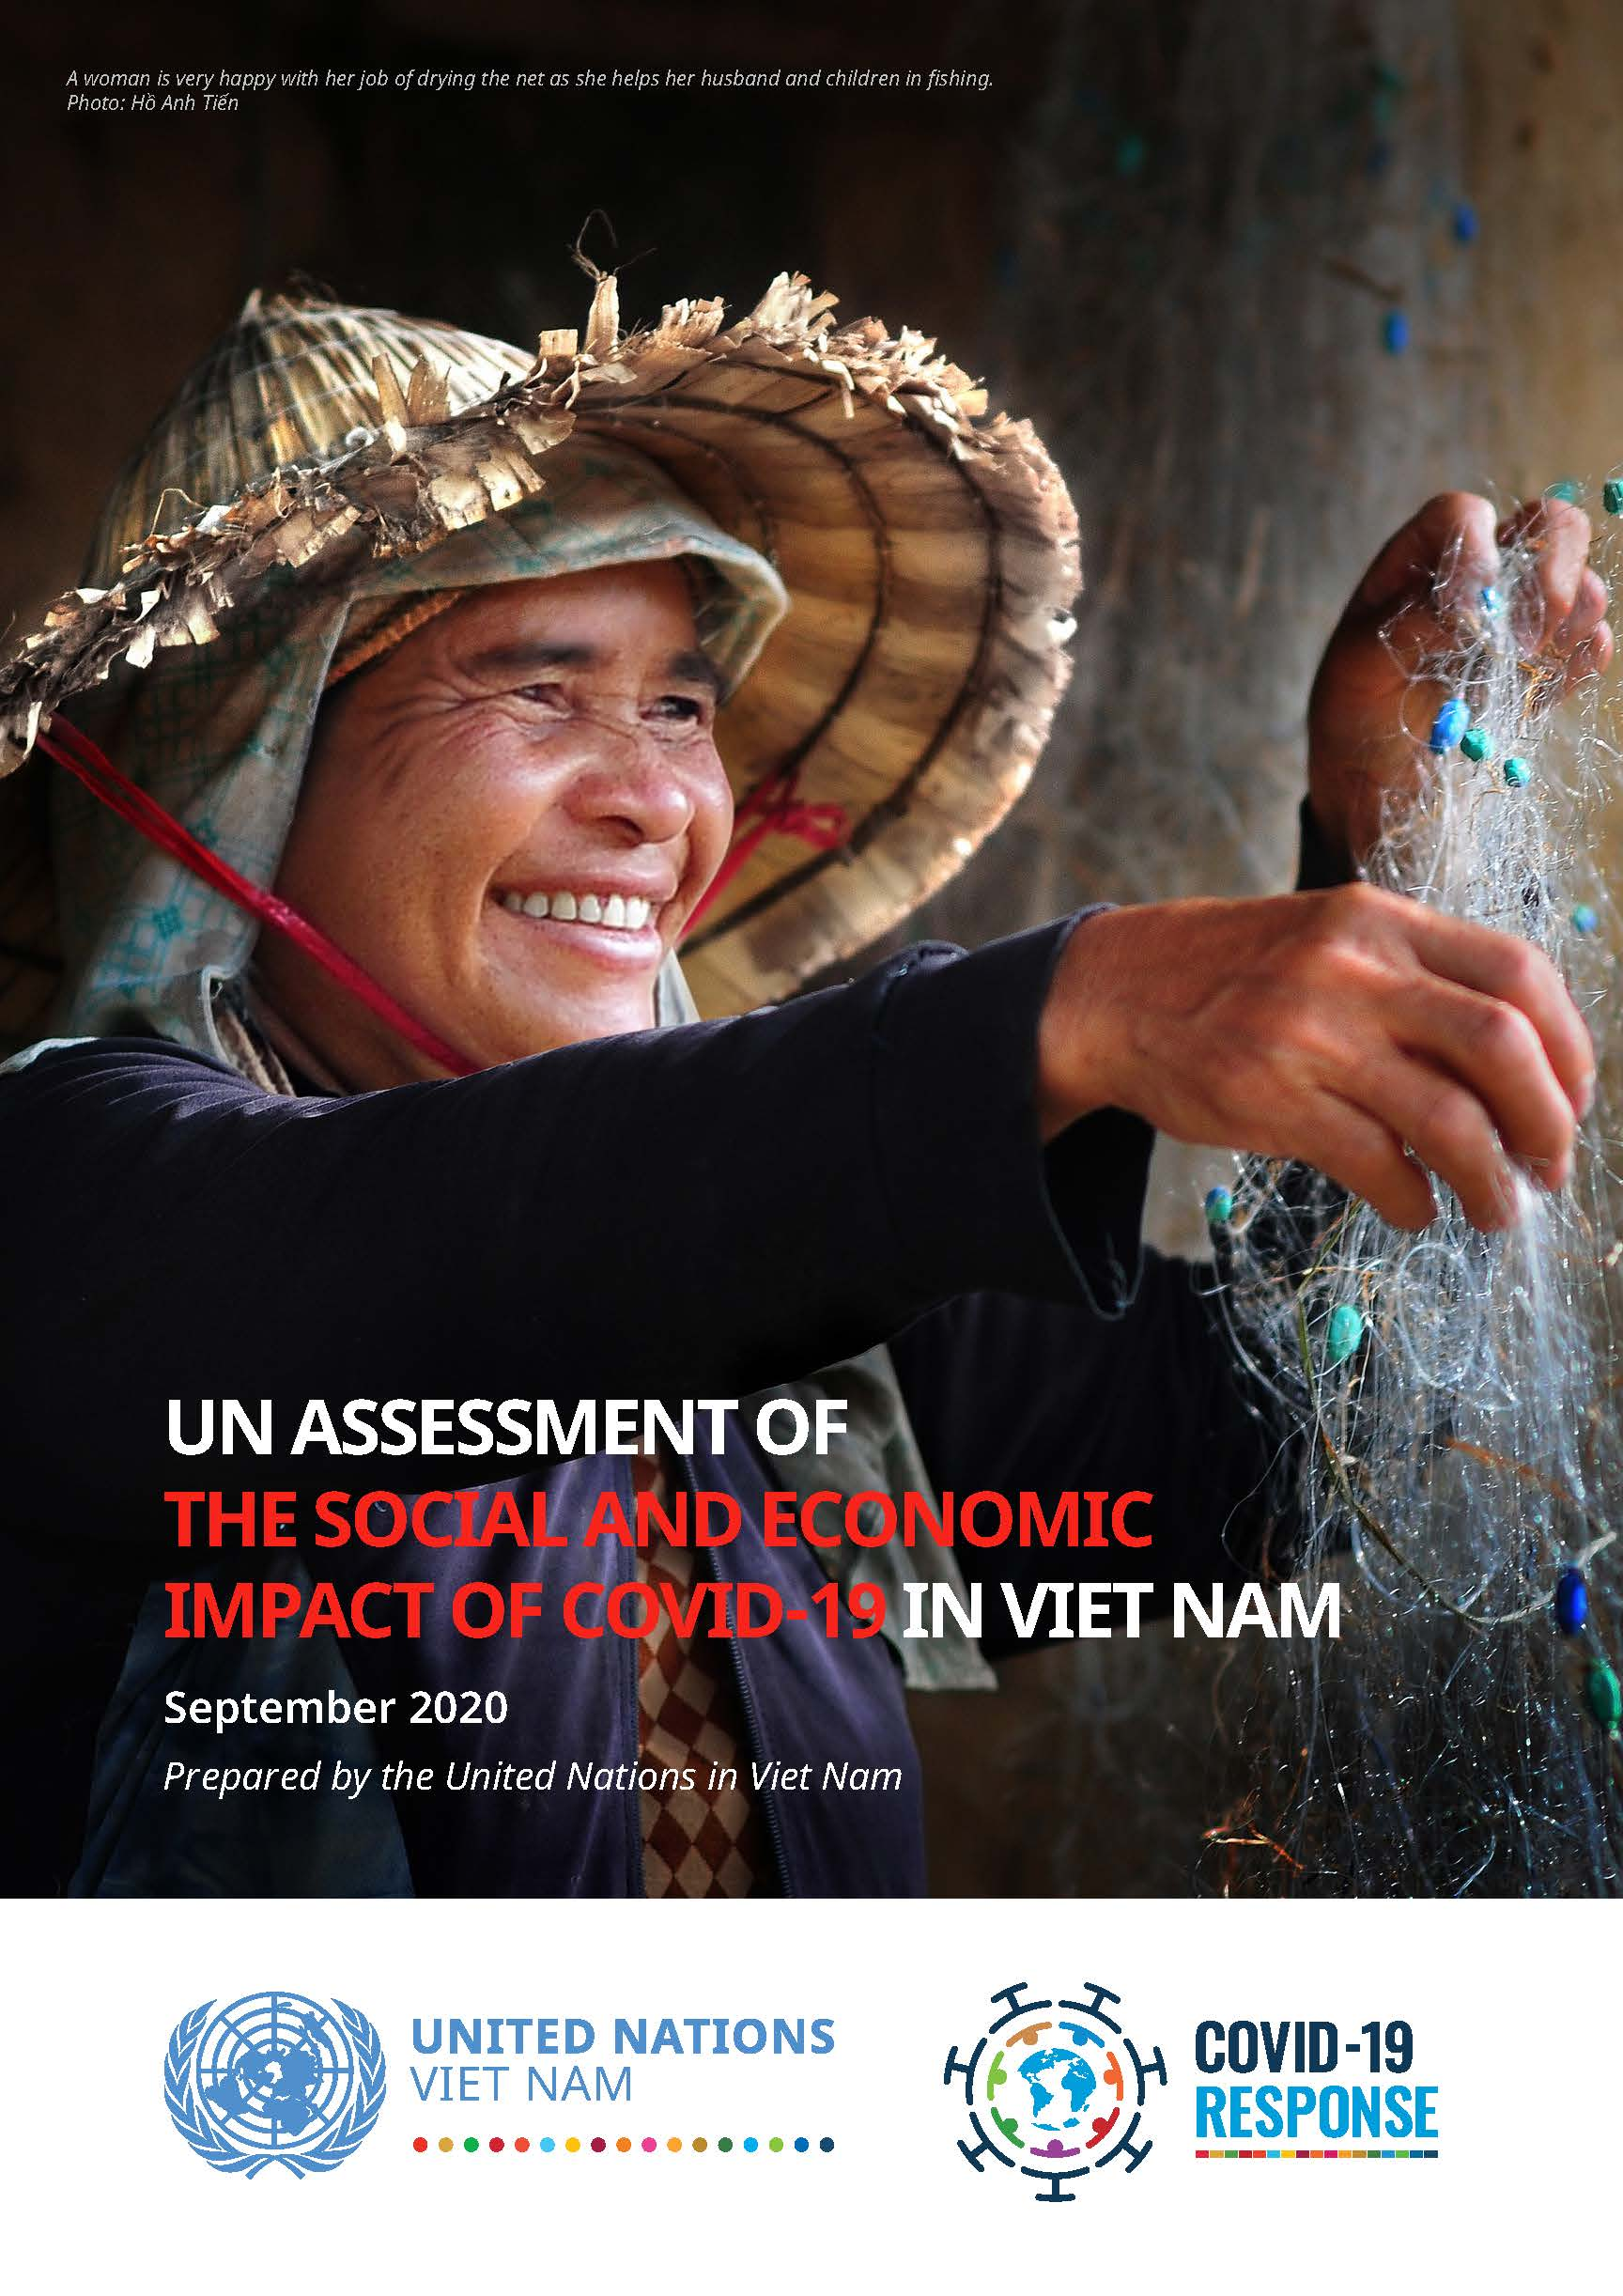 UN Assessment of the Social and Economic Impact of COVID-19 in Viet Nam